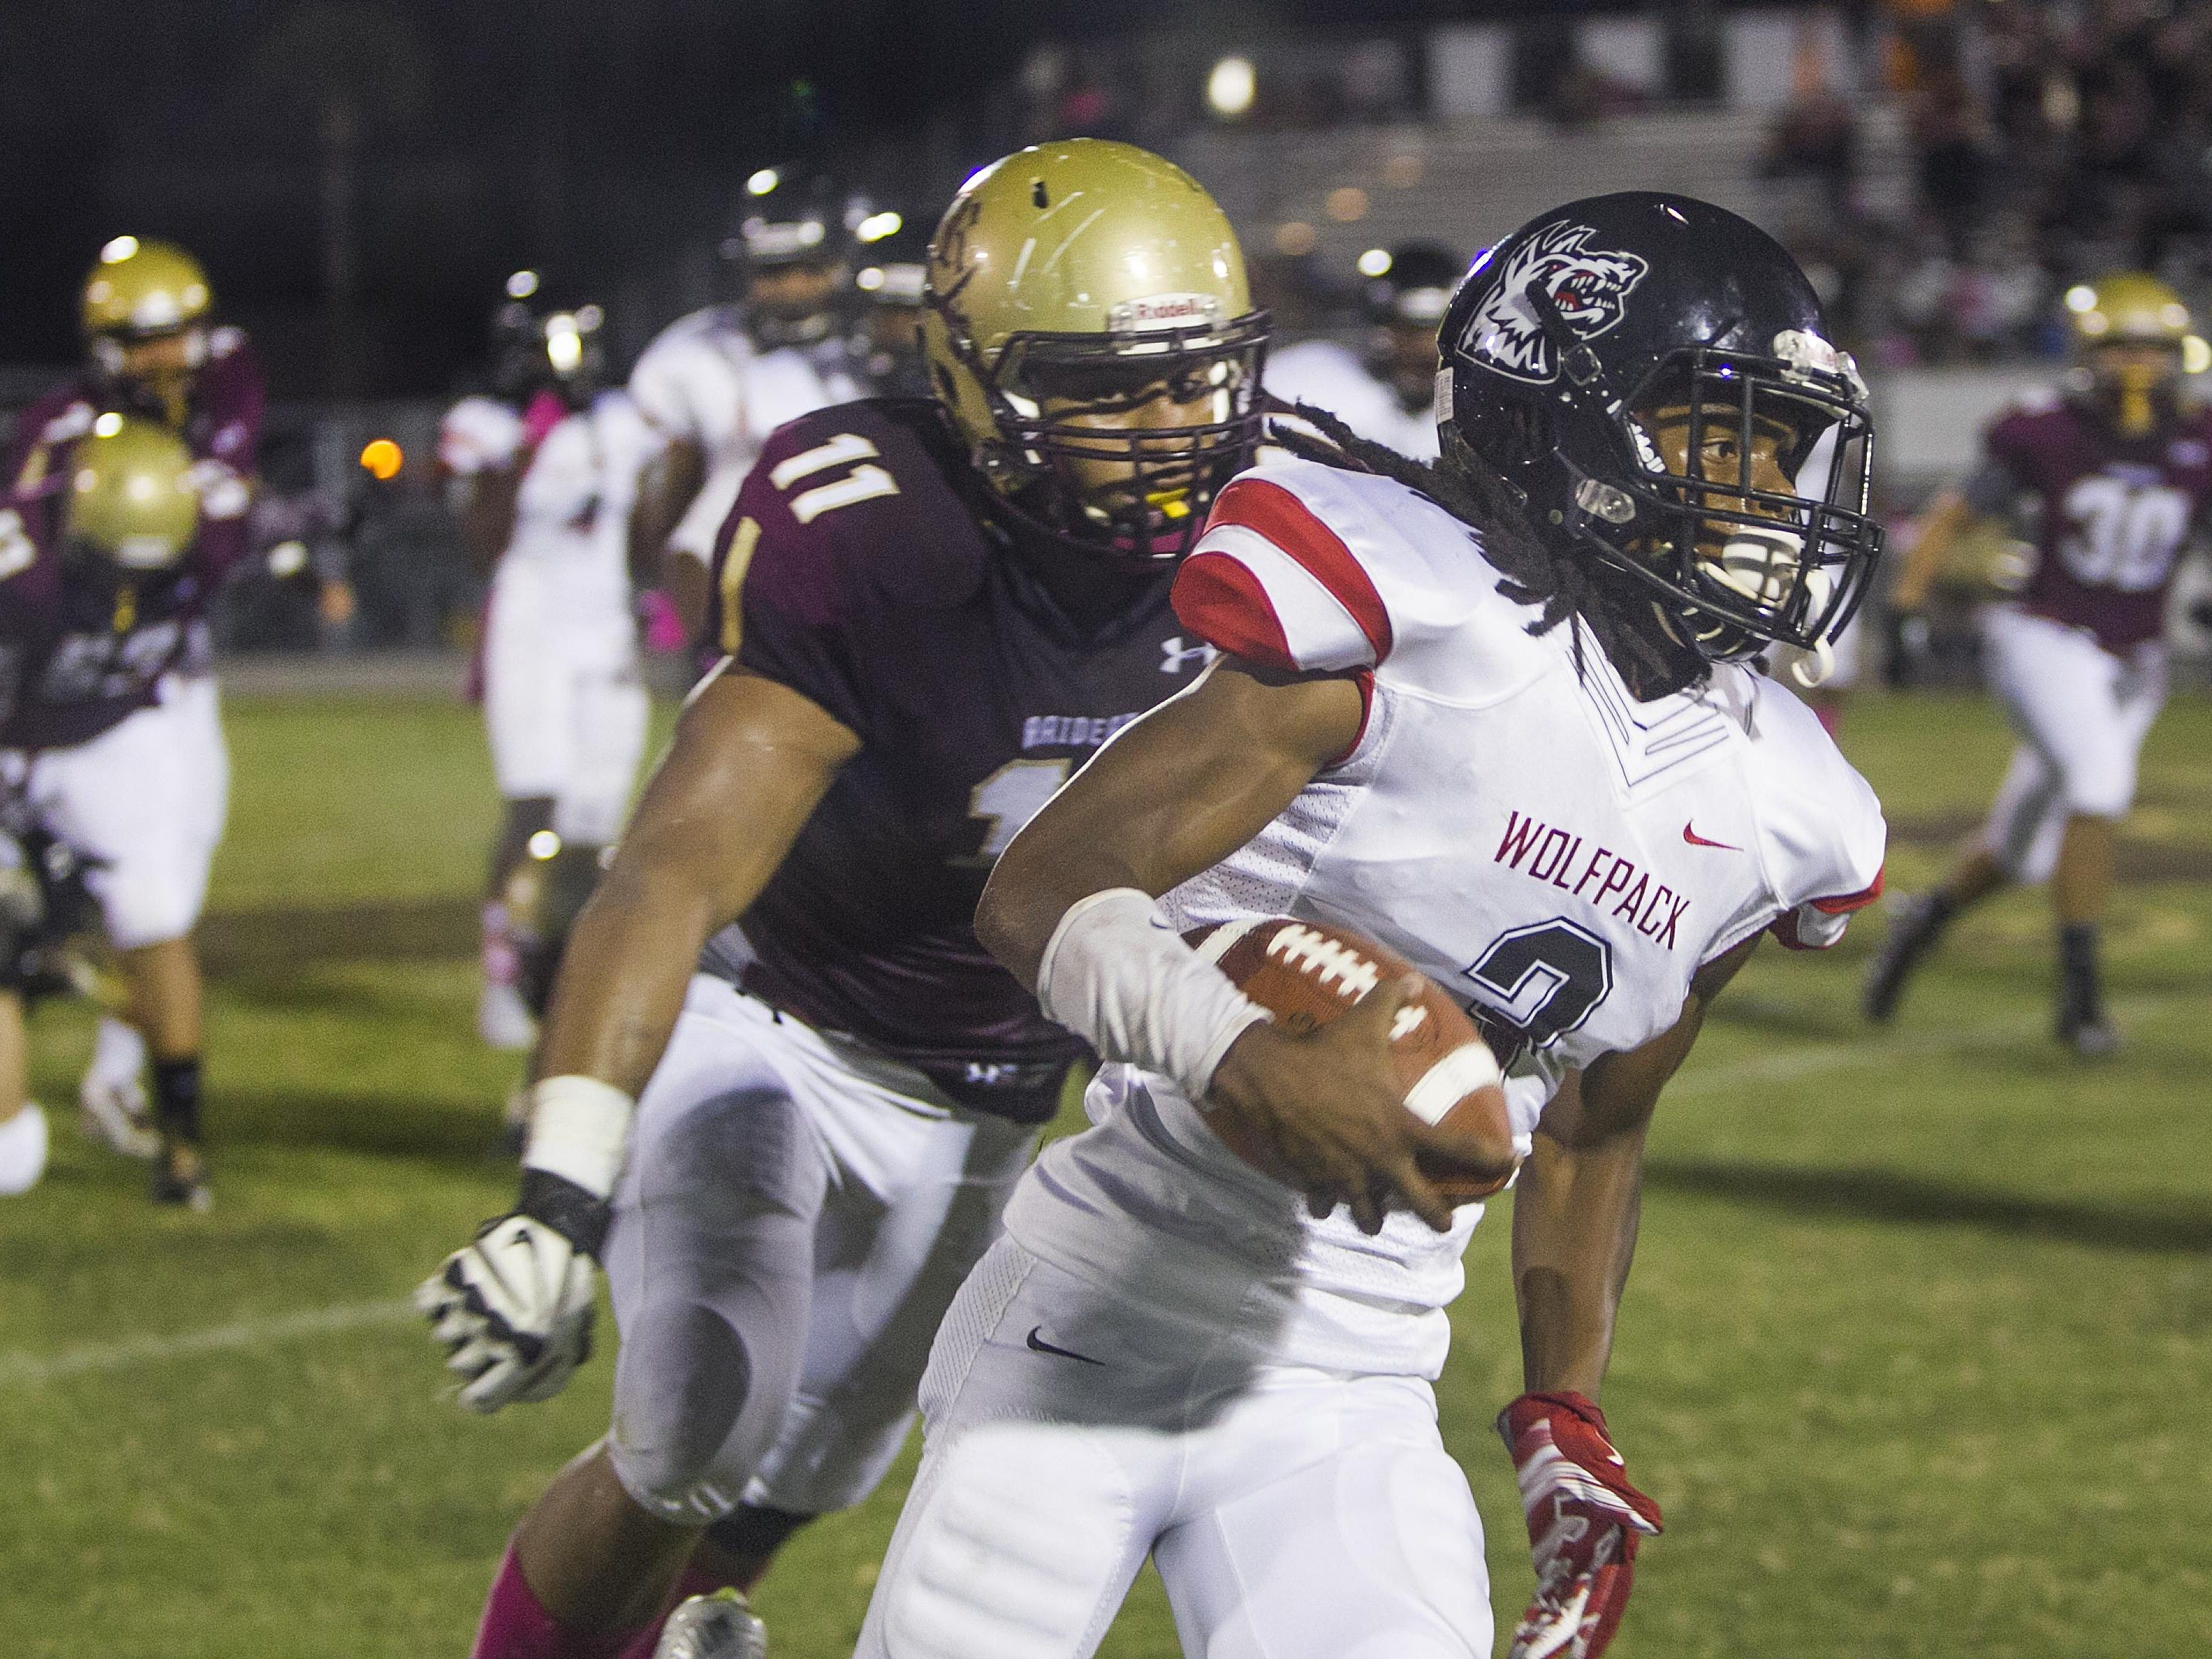 Riverdale defender Jared Tracey comes up behind South Fort Myers ball carrier Ke'Shon Murray but can't catch up; the result is a SFM touchdown Friday as the Raiders host the Wolfpack in East Fort Myers.